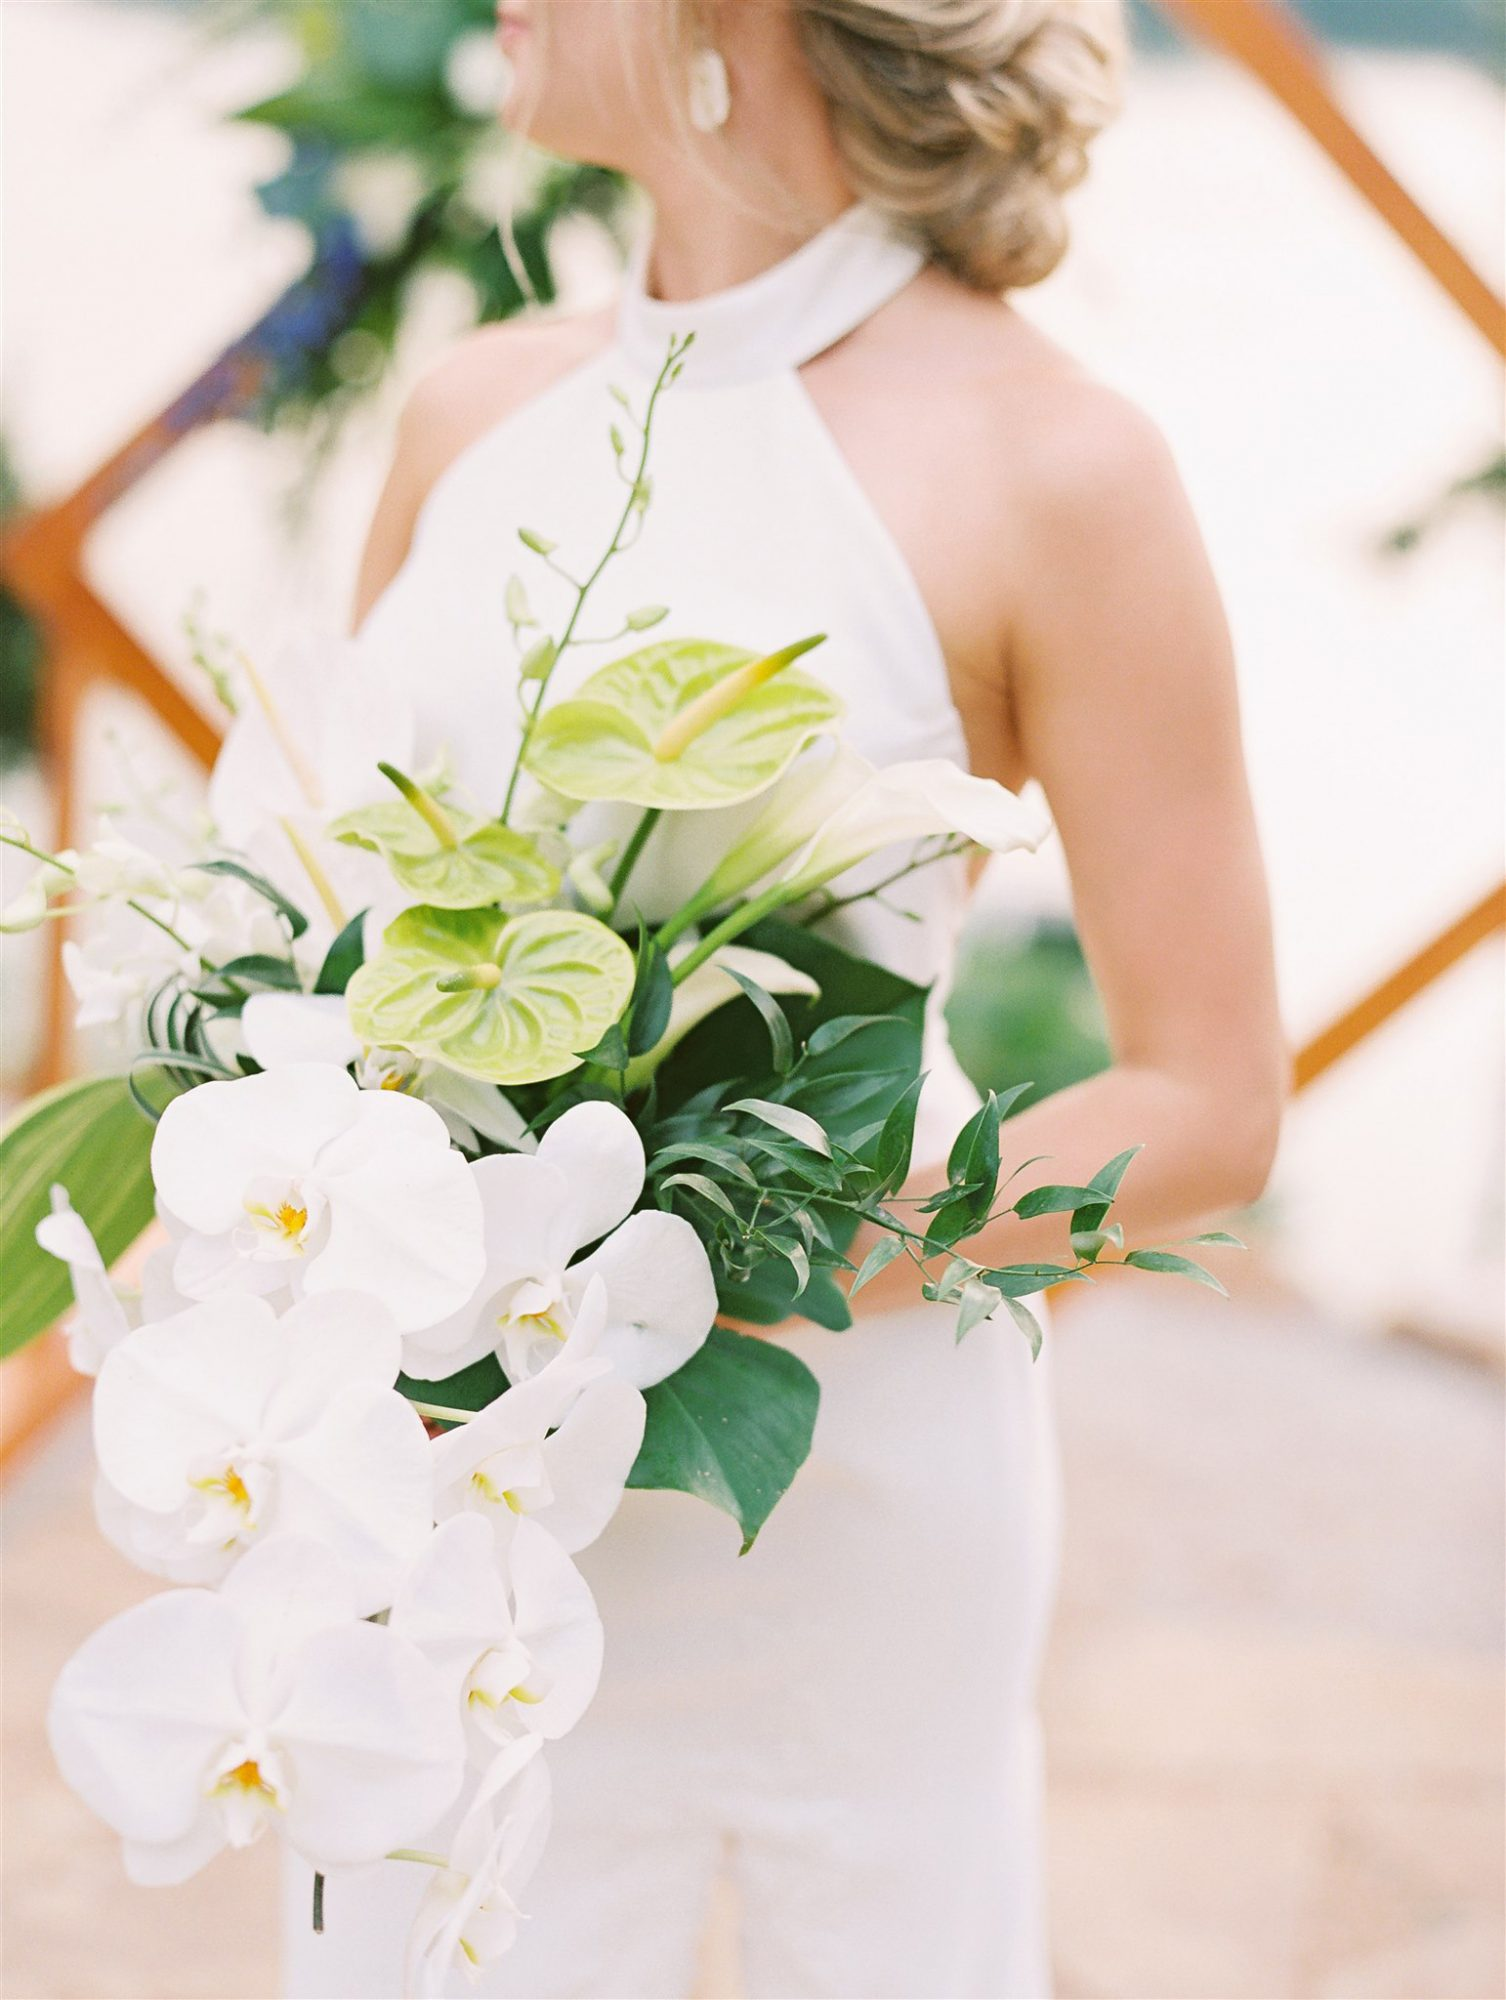 bridal bouquet comprised of white orchids green and white anthurium and white lilies